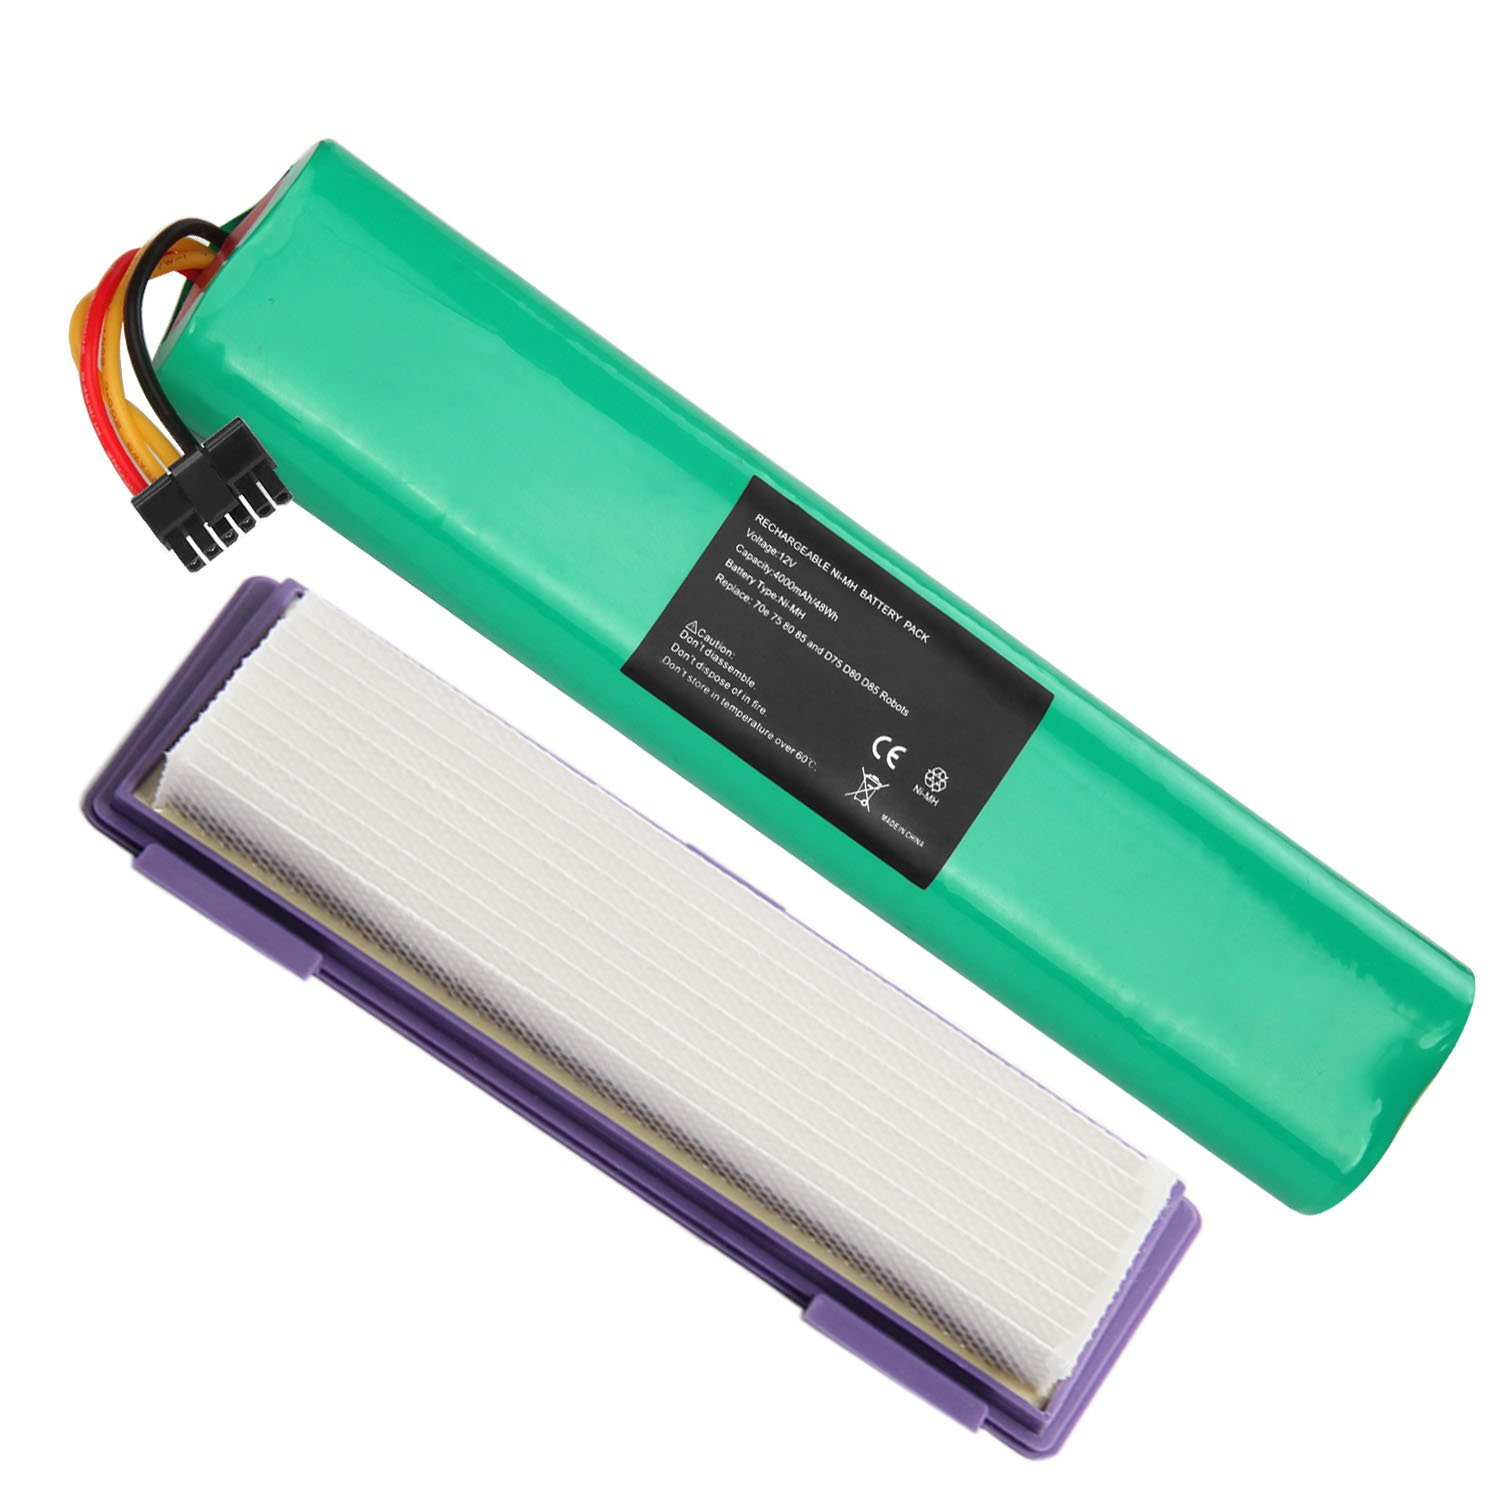 Fancy Buying NI-MH 12V 4000mAh Extended Battery with HEPA Fliter for Neato Botvac Series and Botvac D Series Robots Botvac 70e, 75, 80, 85 Robotic Vacuum Cleaner 945-0129 945-0174